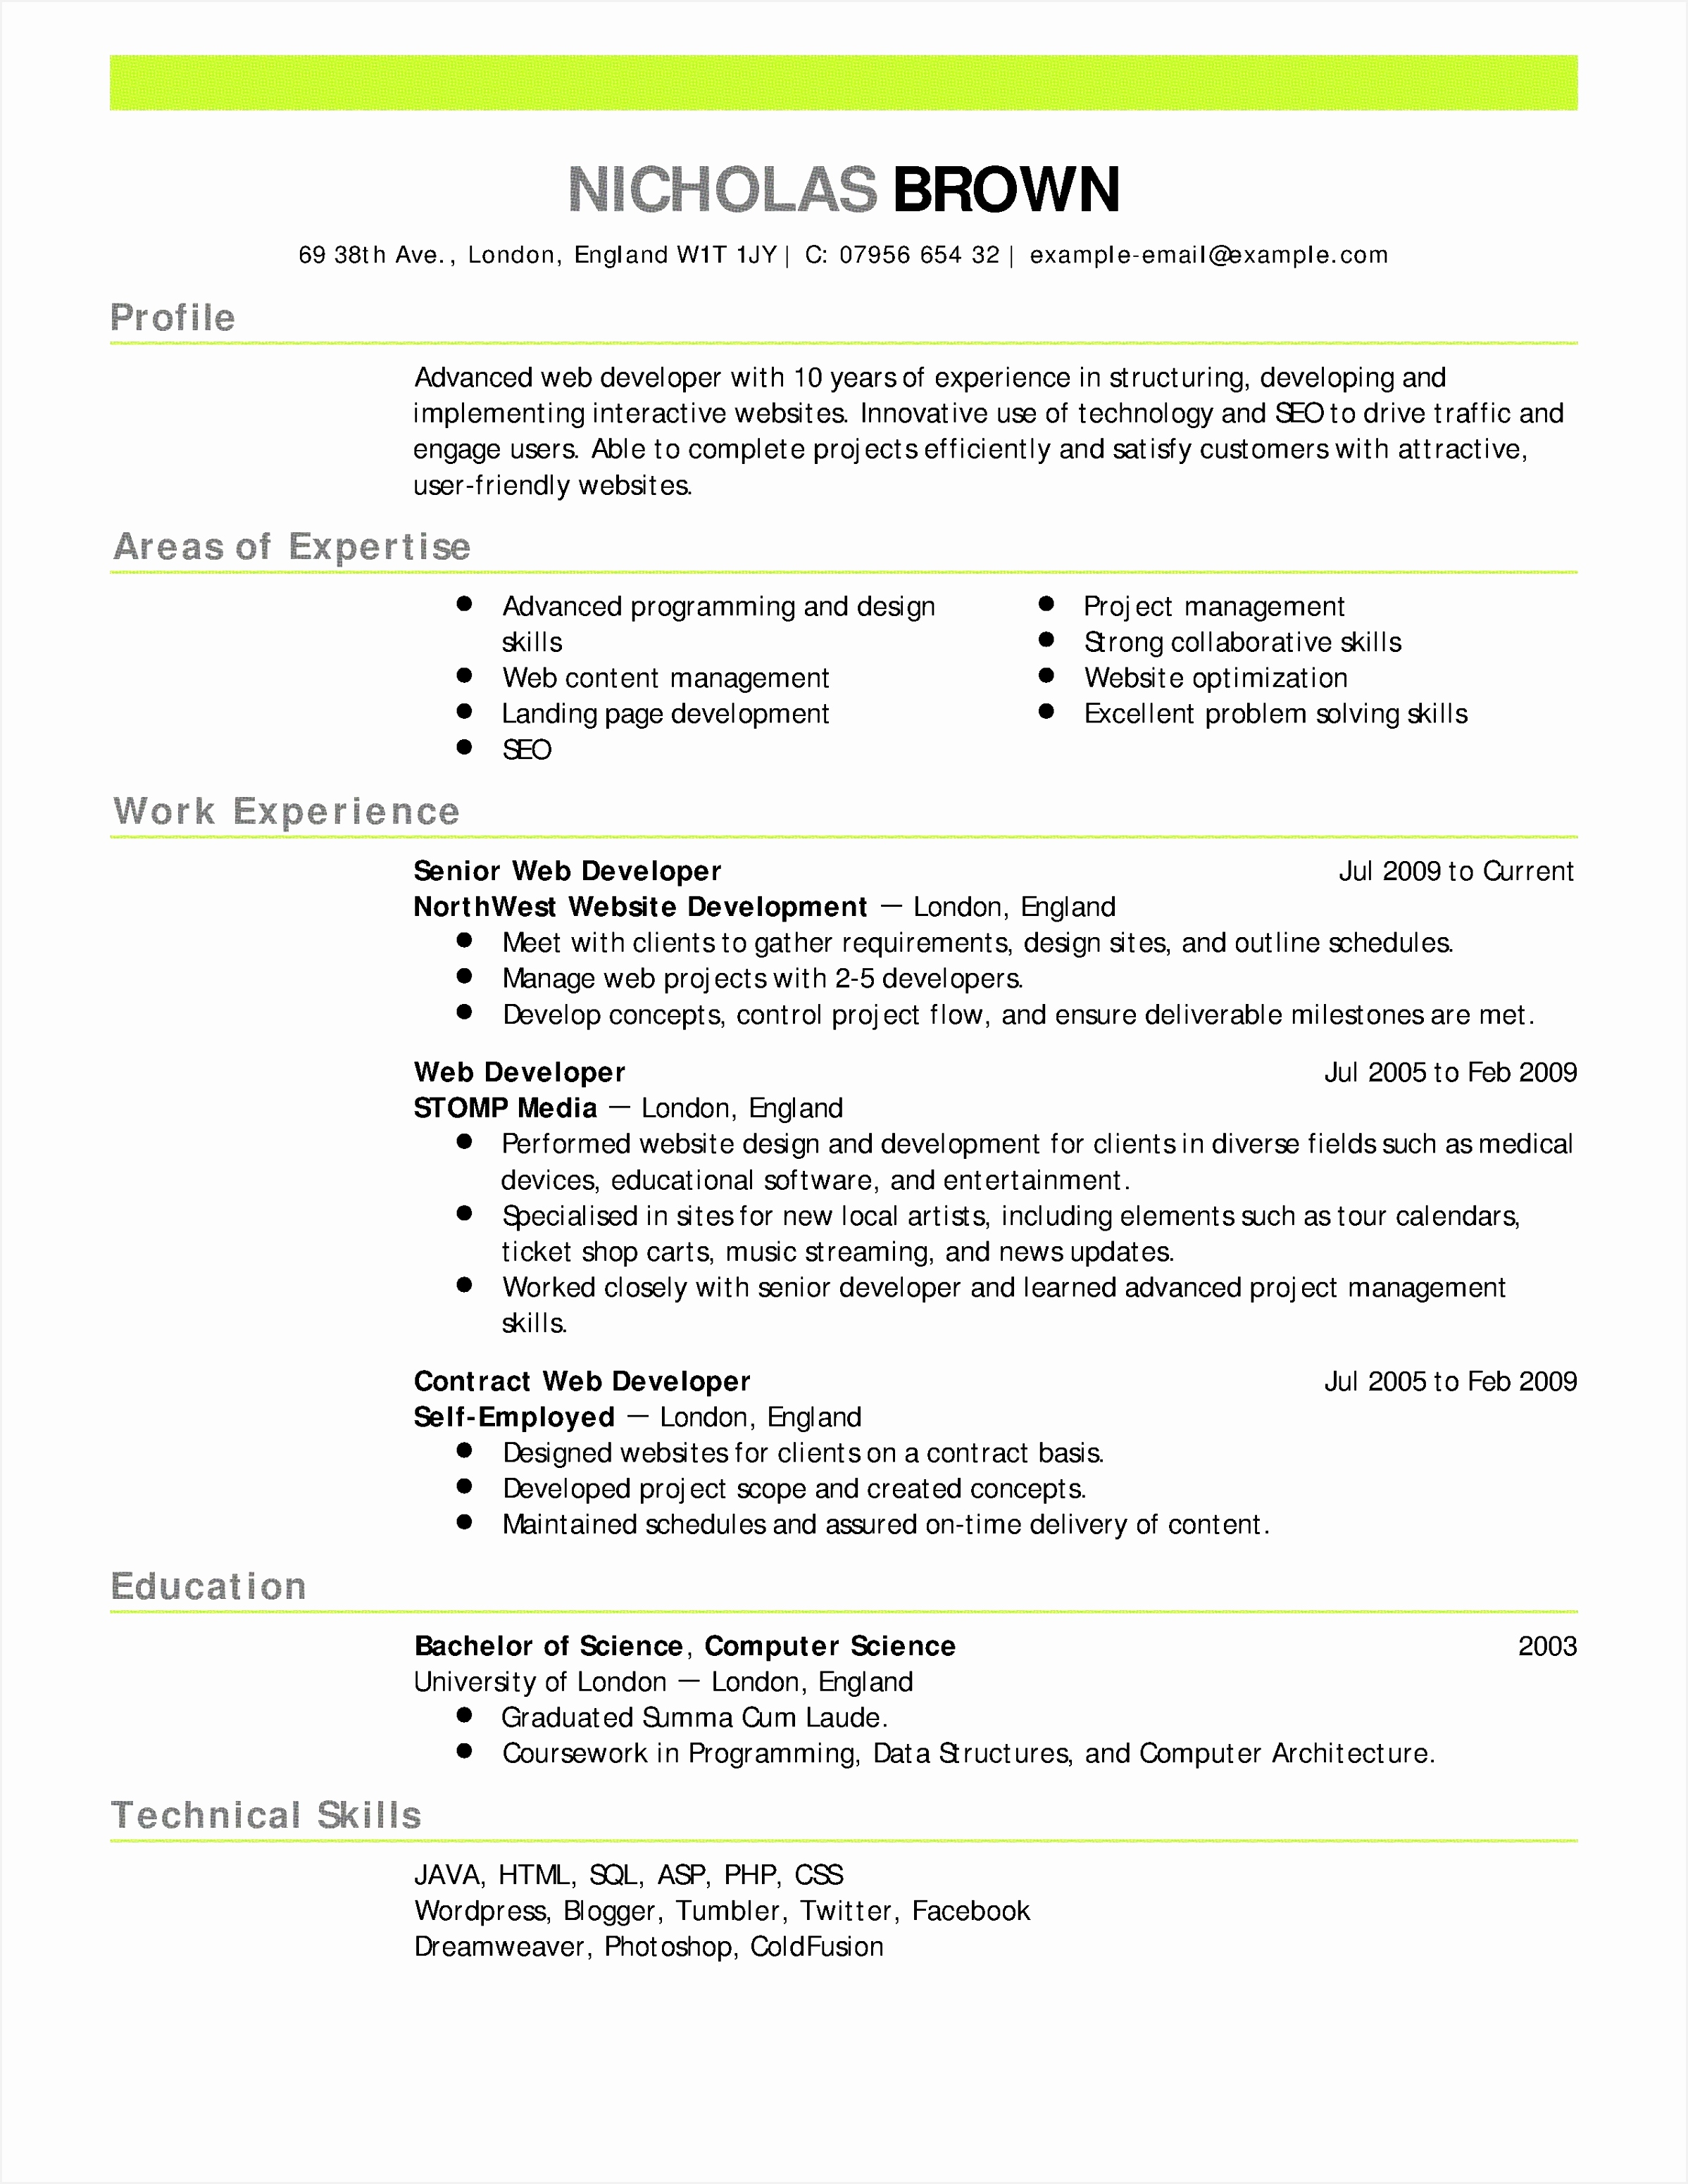 Examples Resumes Lovely Accounting Resume Objective Best Fresh Examples Resumes Ecologist Examples Resumes 310223979ybrc